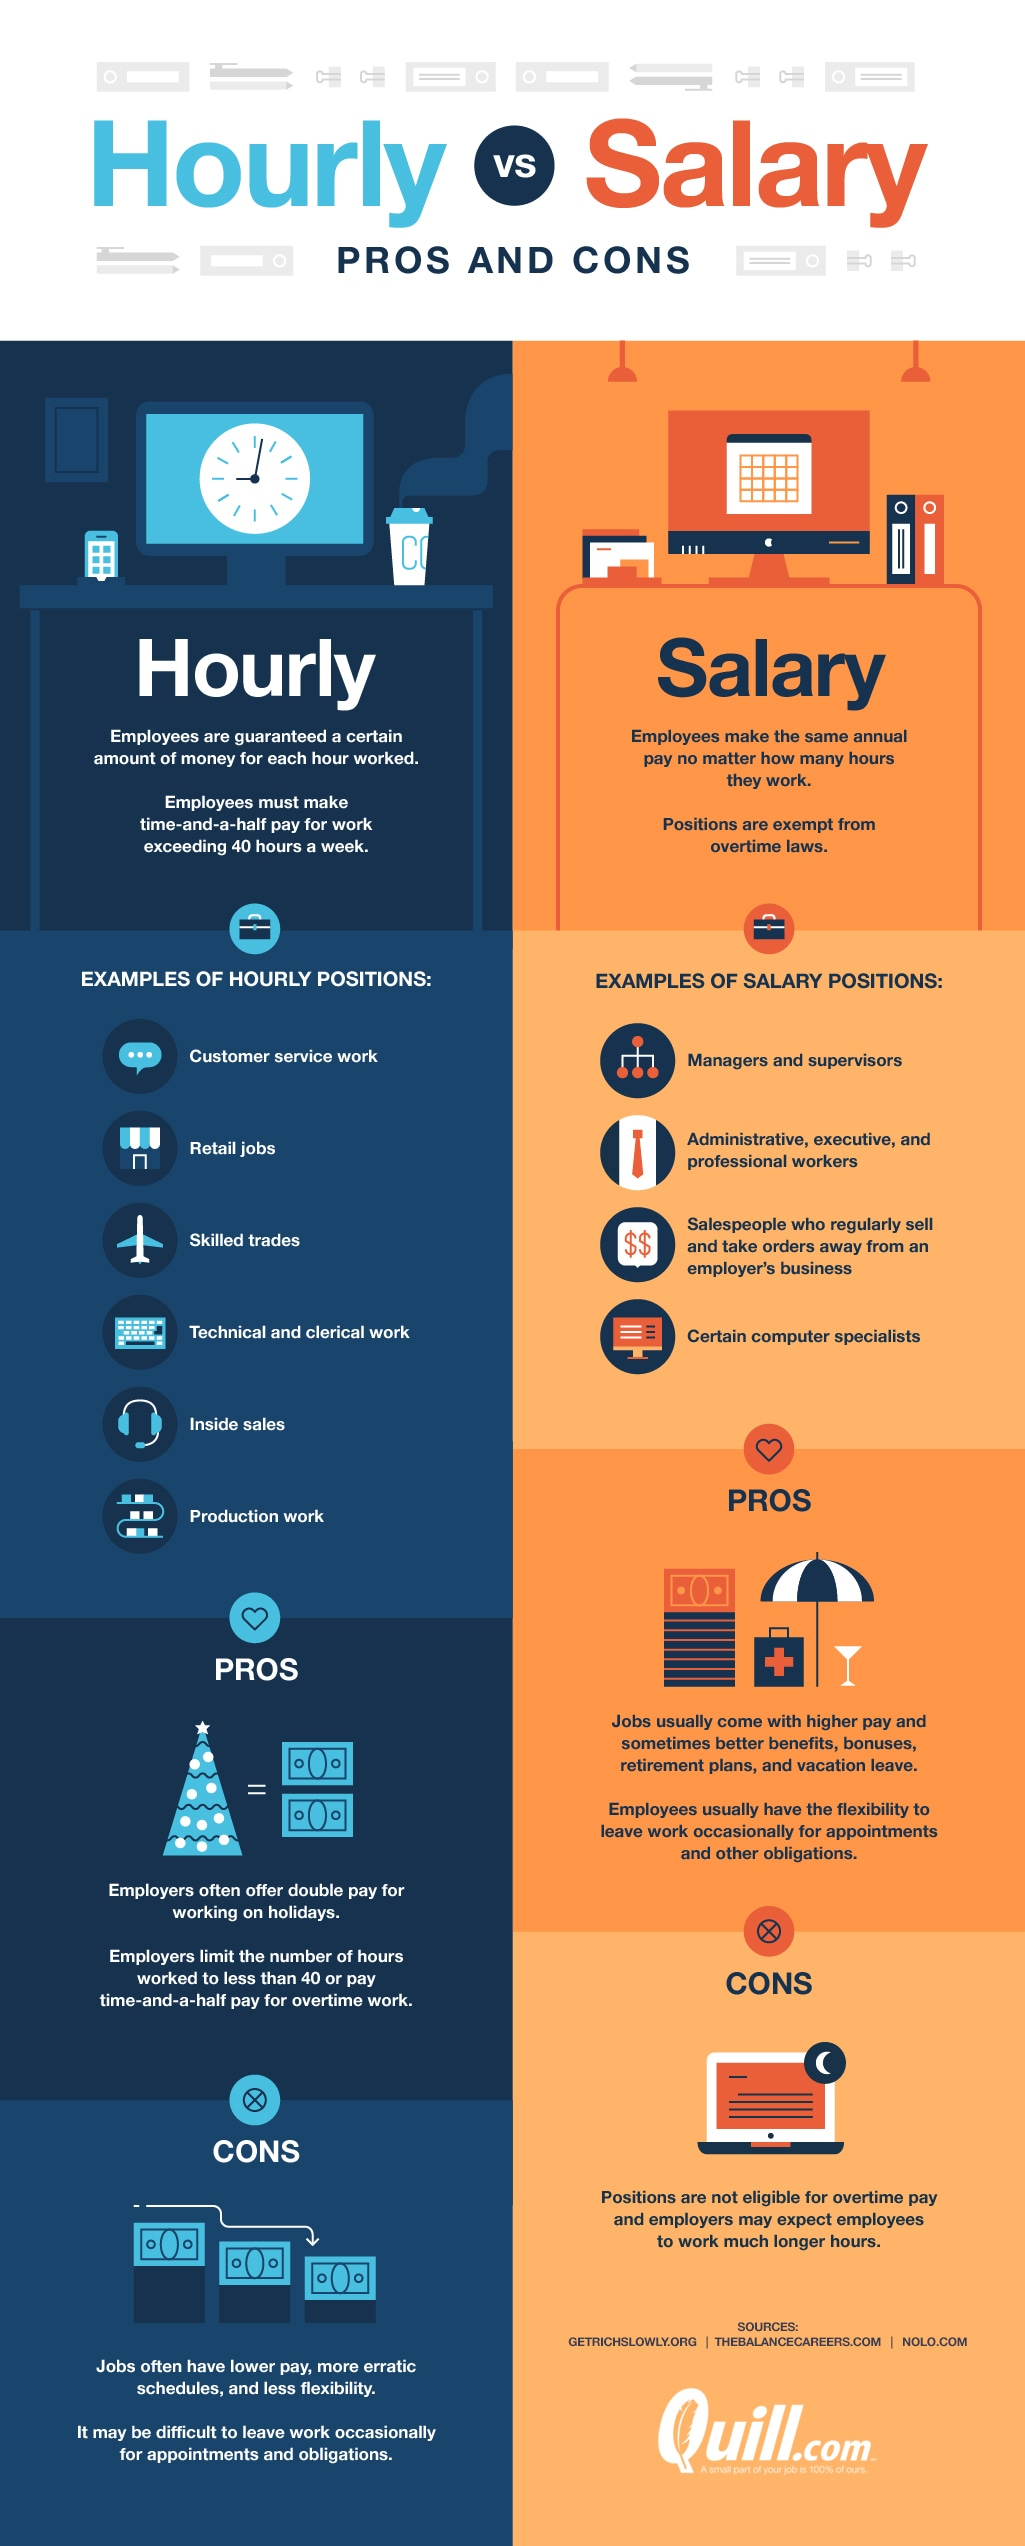 Comparing Pros and Cons: Hourly Pay Vs Annual Salary - Infographic